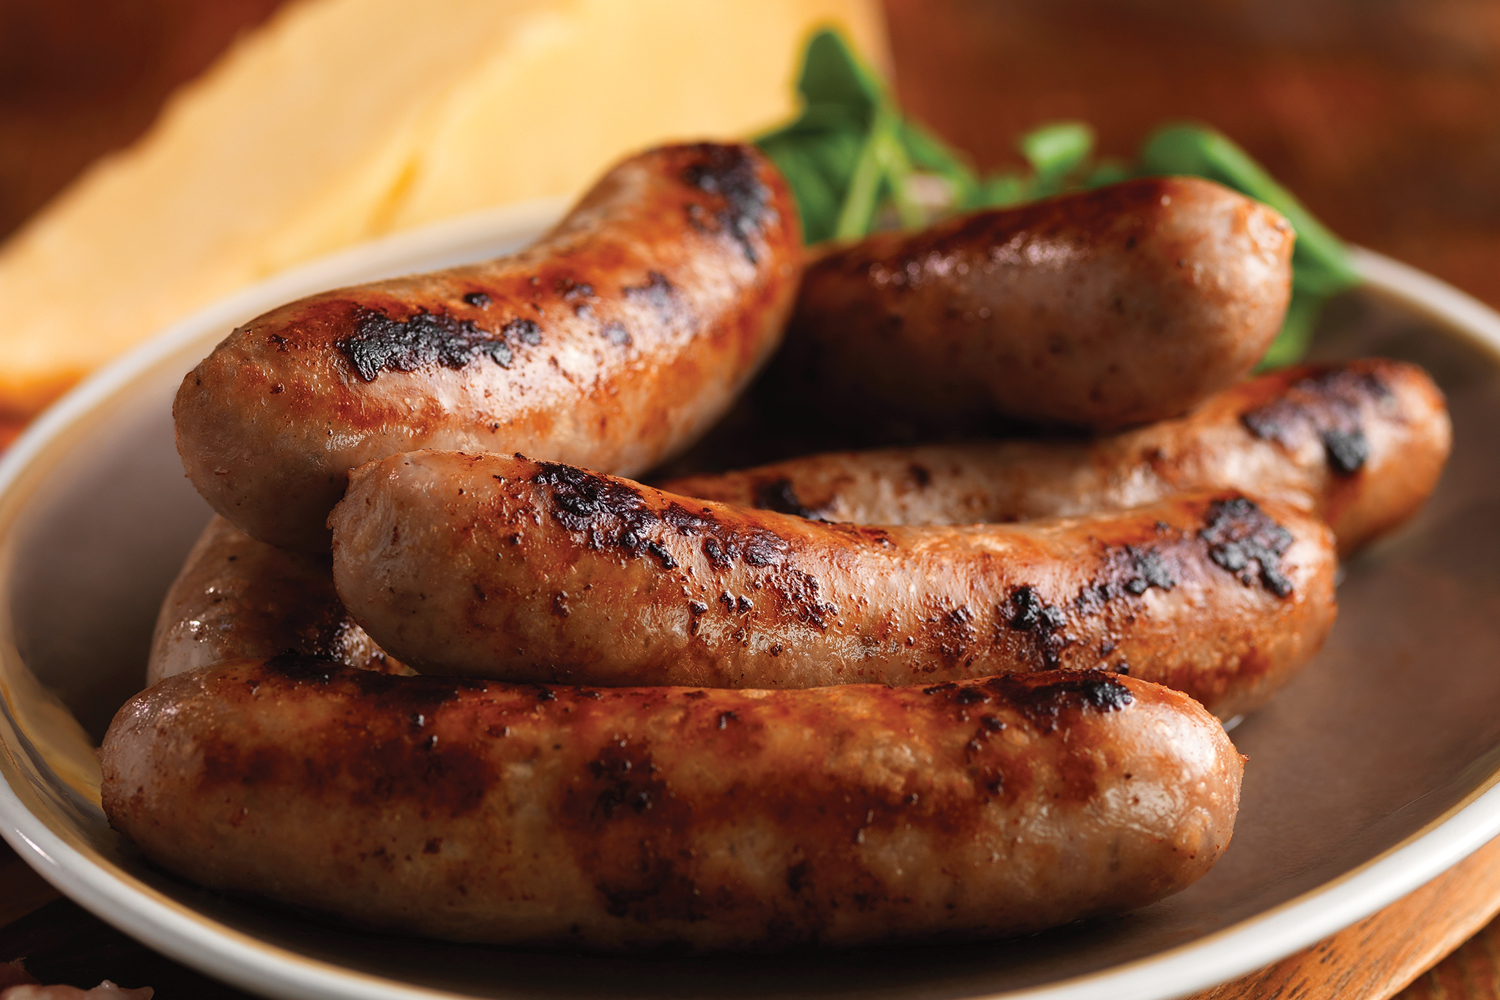 Lincolnshire sausages. Popular English sausages